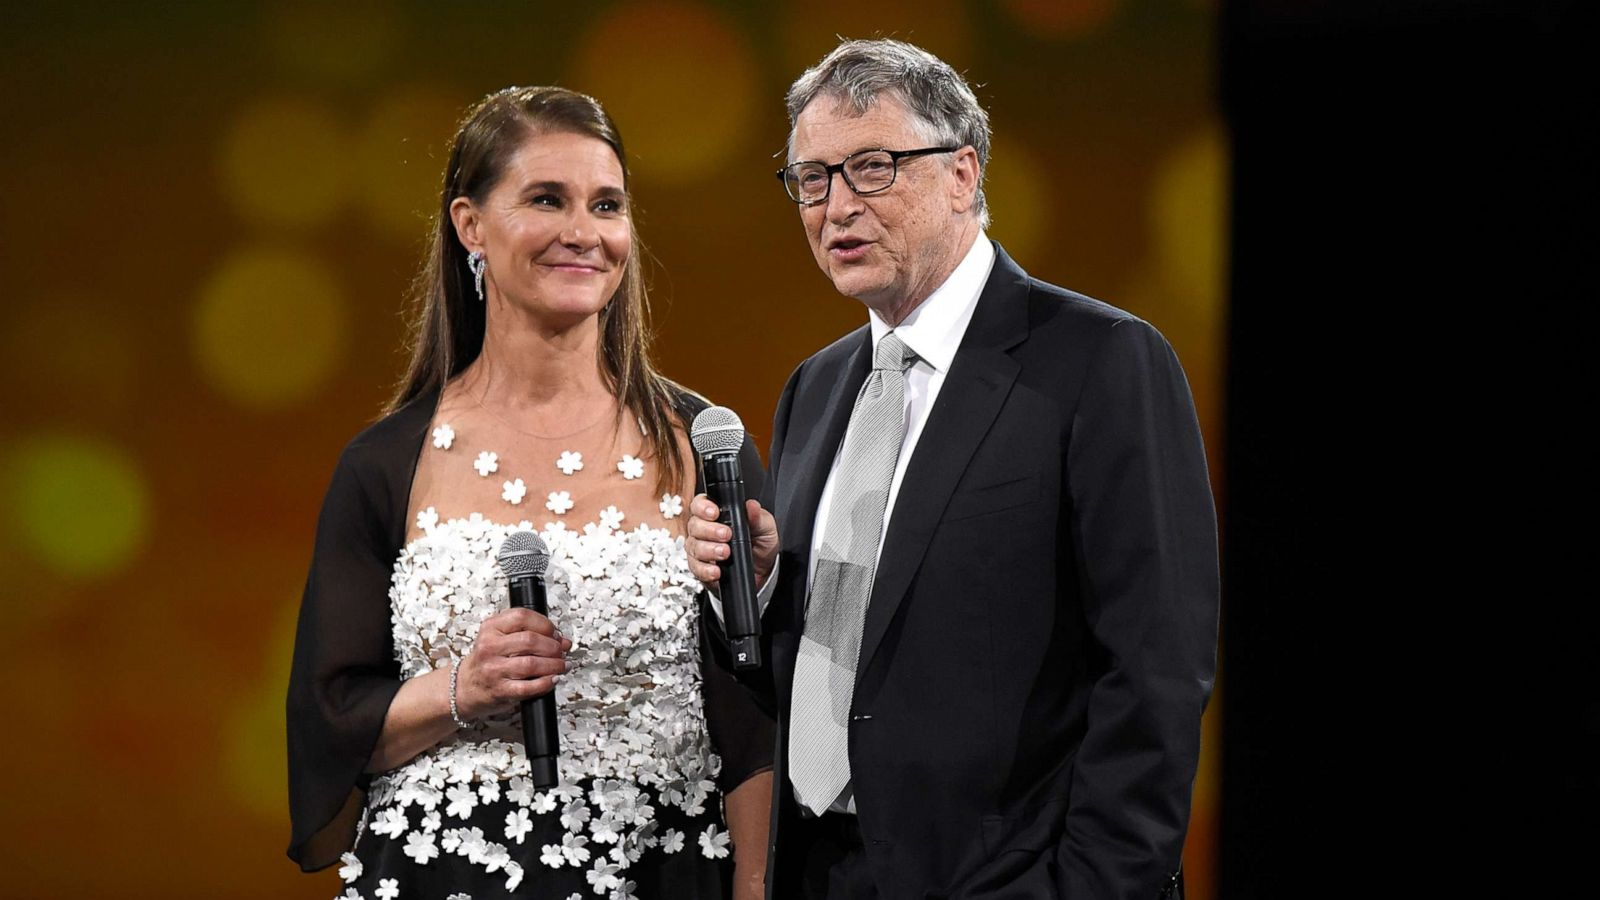 Bill and Melinda Gates to divorce after 27 years of marriage - ABC News